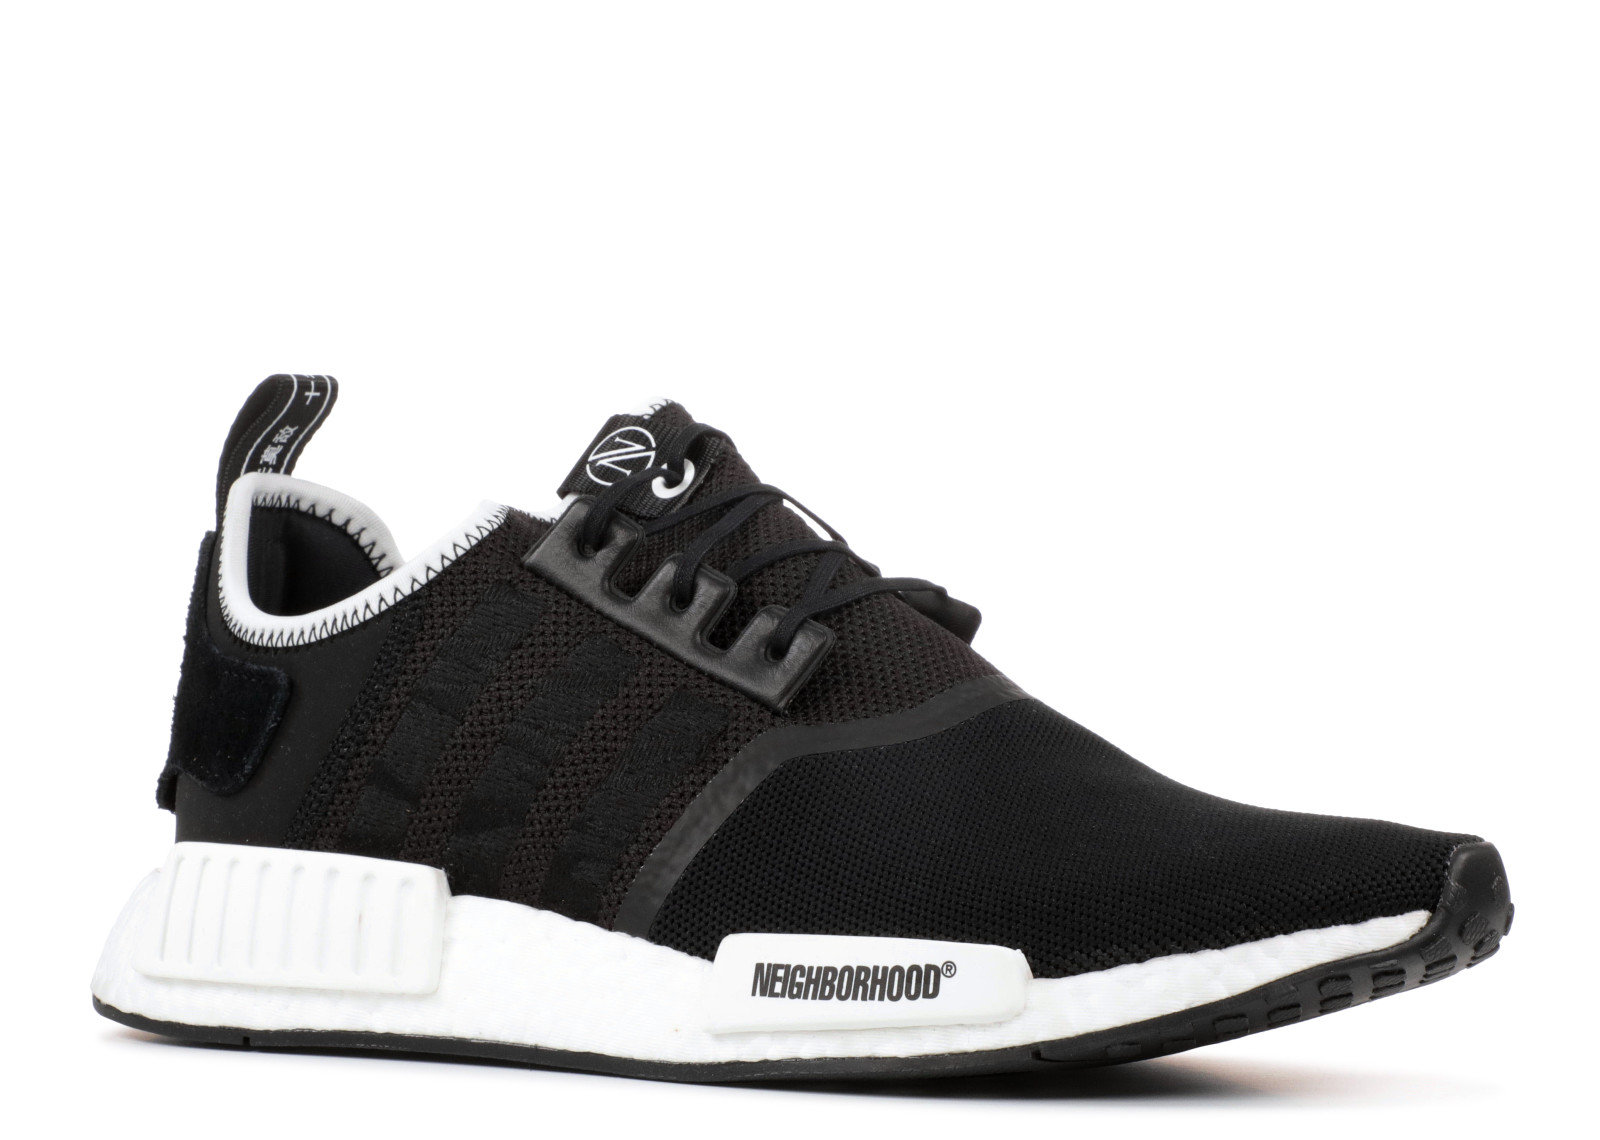 low priced c29ef 69b8c Adidas NMD R1